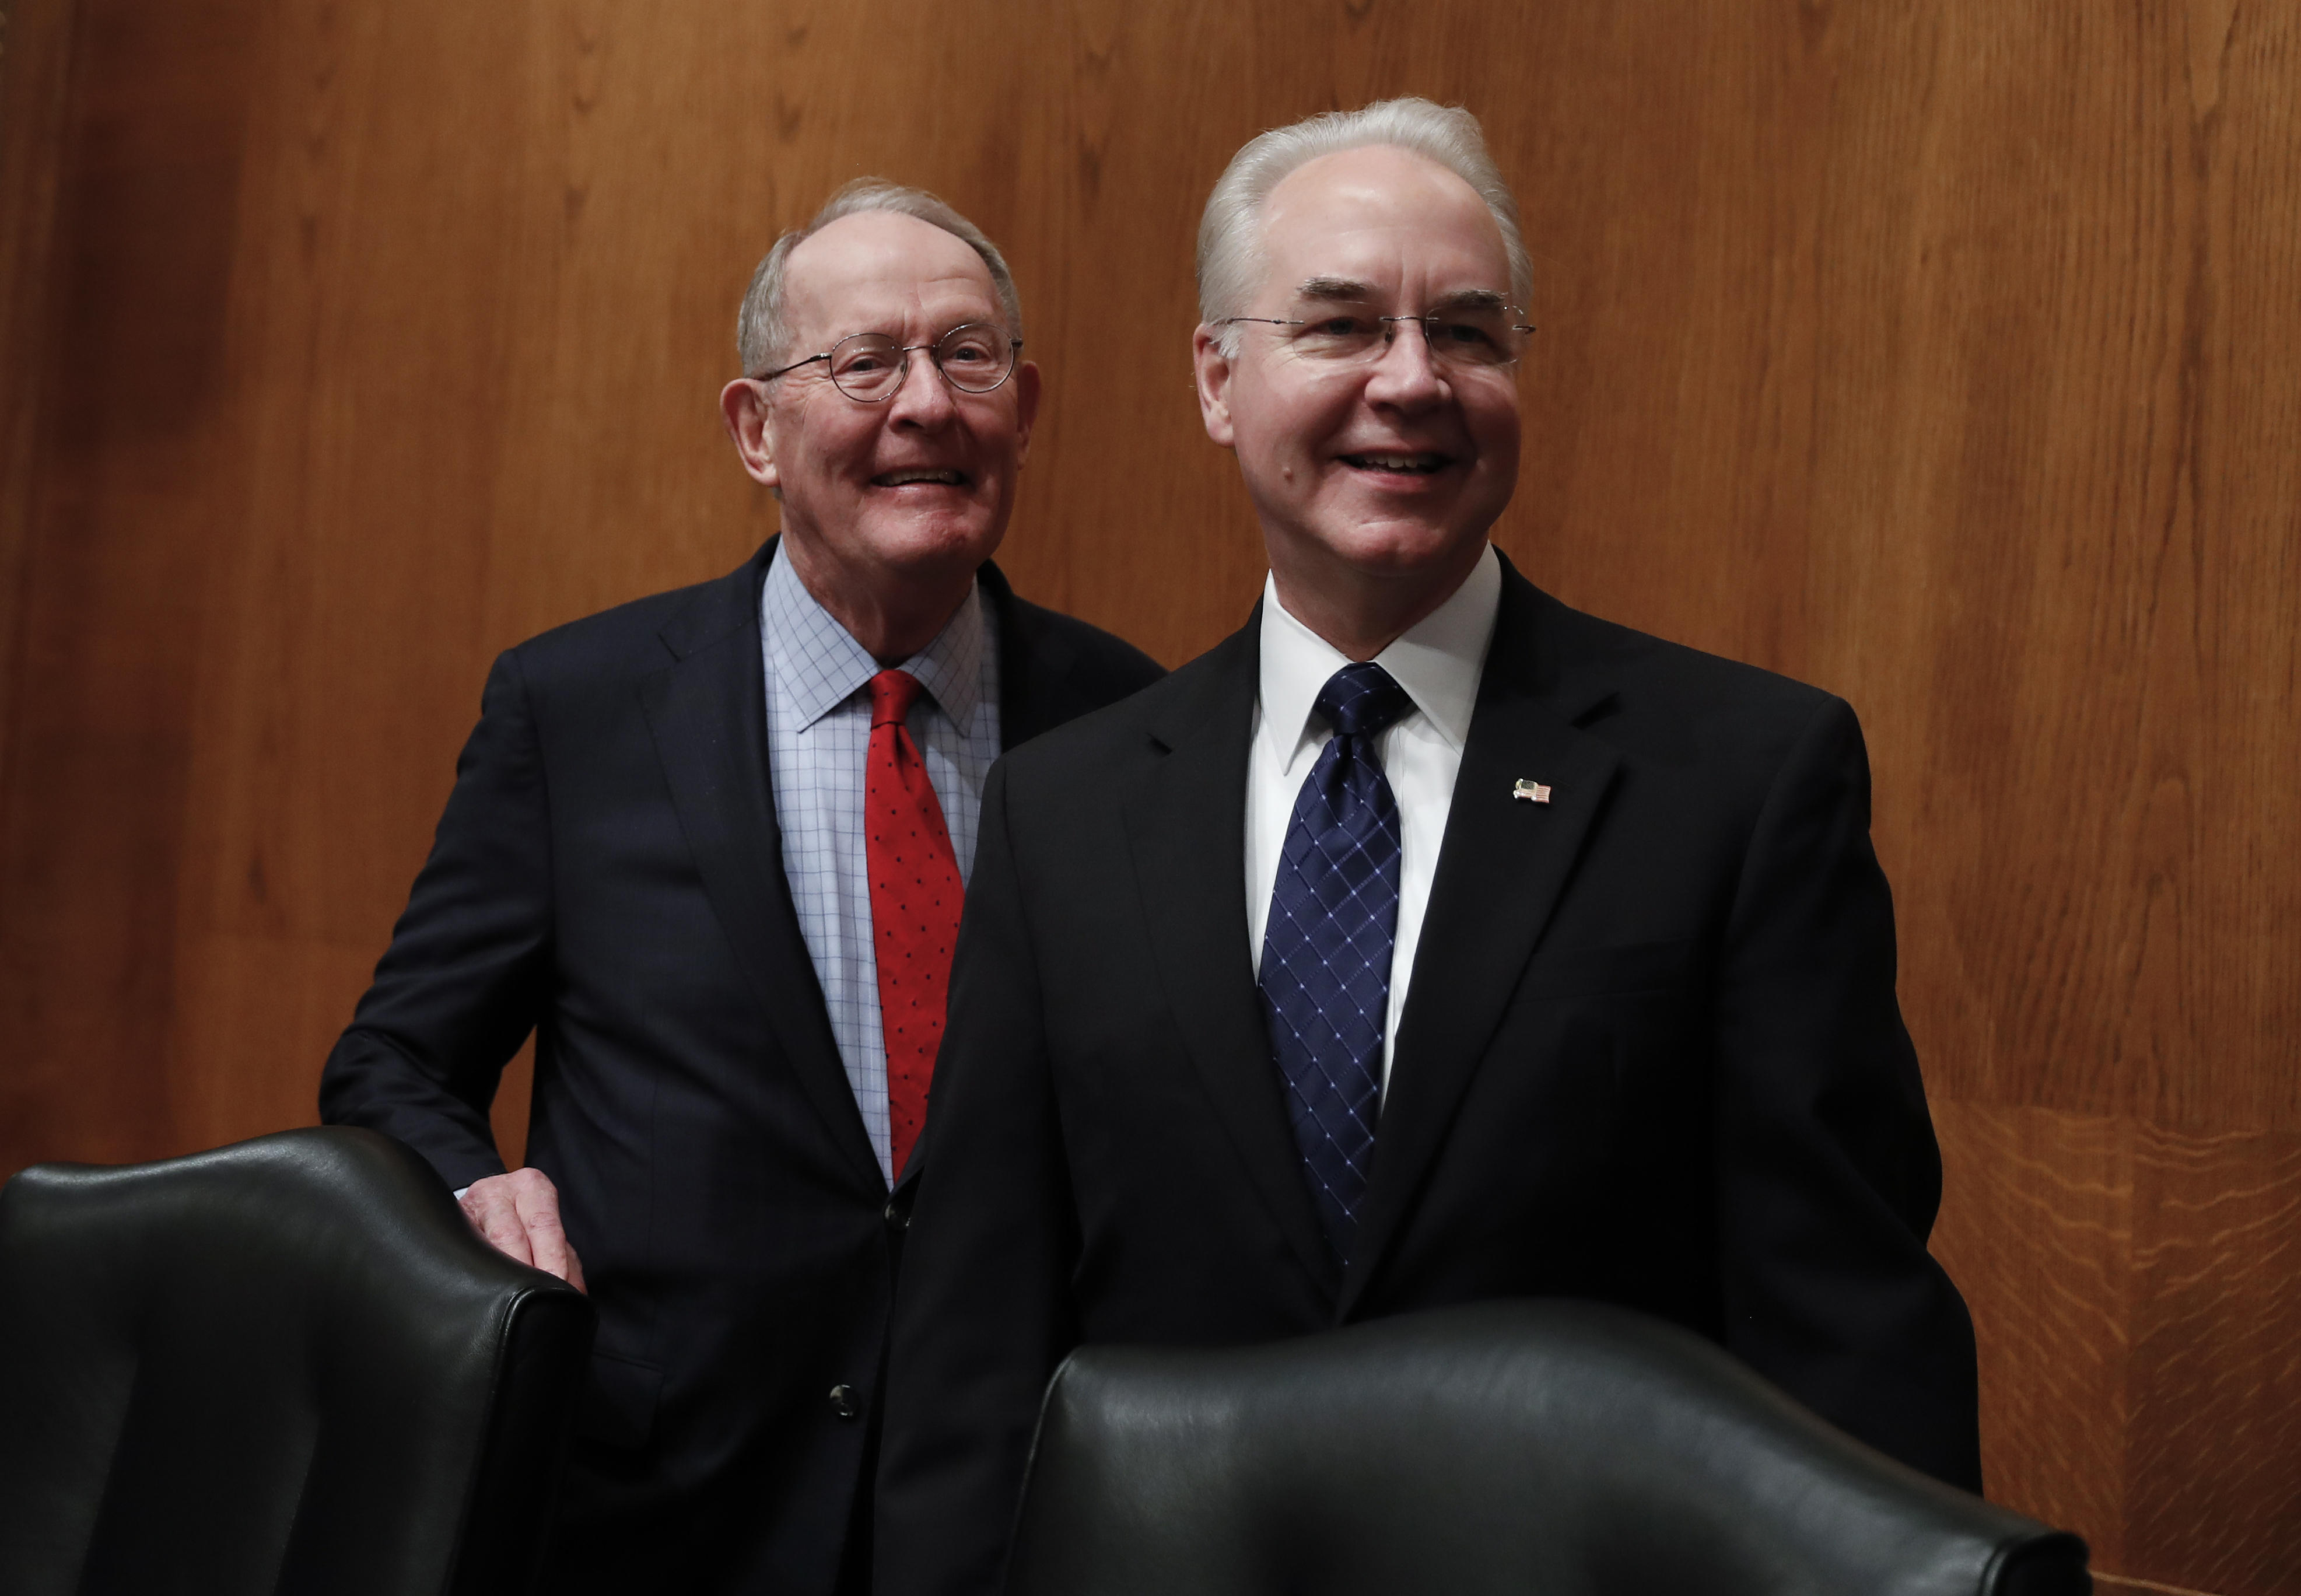 Senate Health, Education, Labor and Pensions Committee Chairman Sen. Lamar Alexander, R-Tenn. (L) stands with Health and Human Services Secretary-designate, Rep. Tom Price, R-Ga. on Capitol Hill in Washington on Jan. 18, 2017.  (AP Photo/Carolyn Kaster)